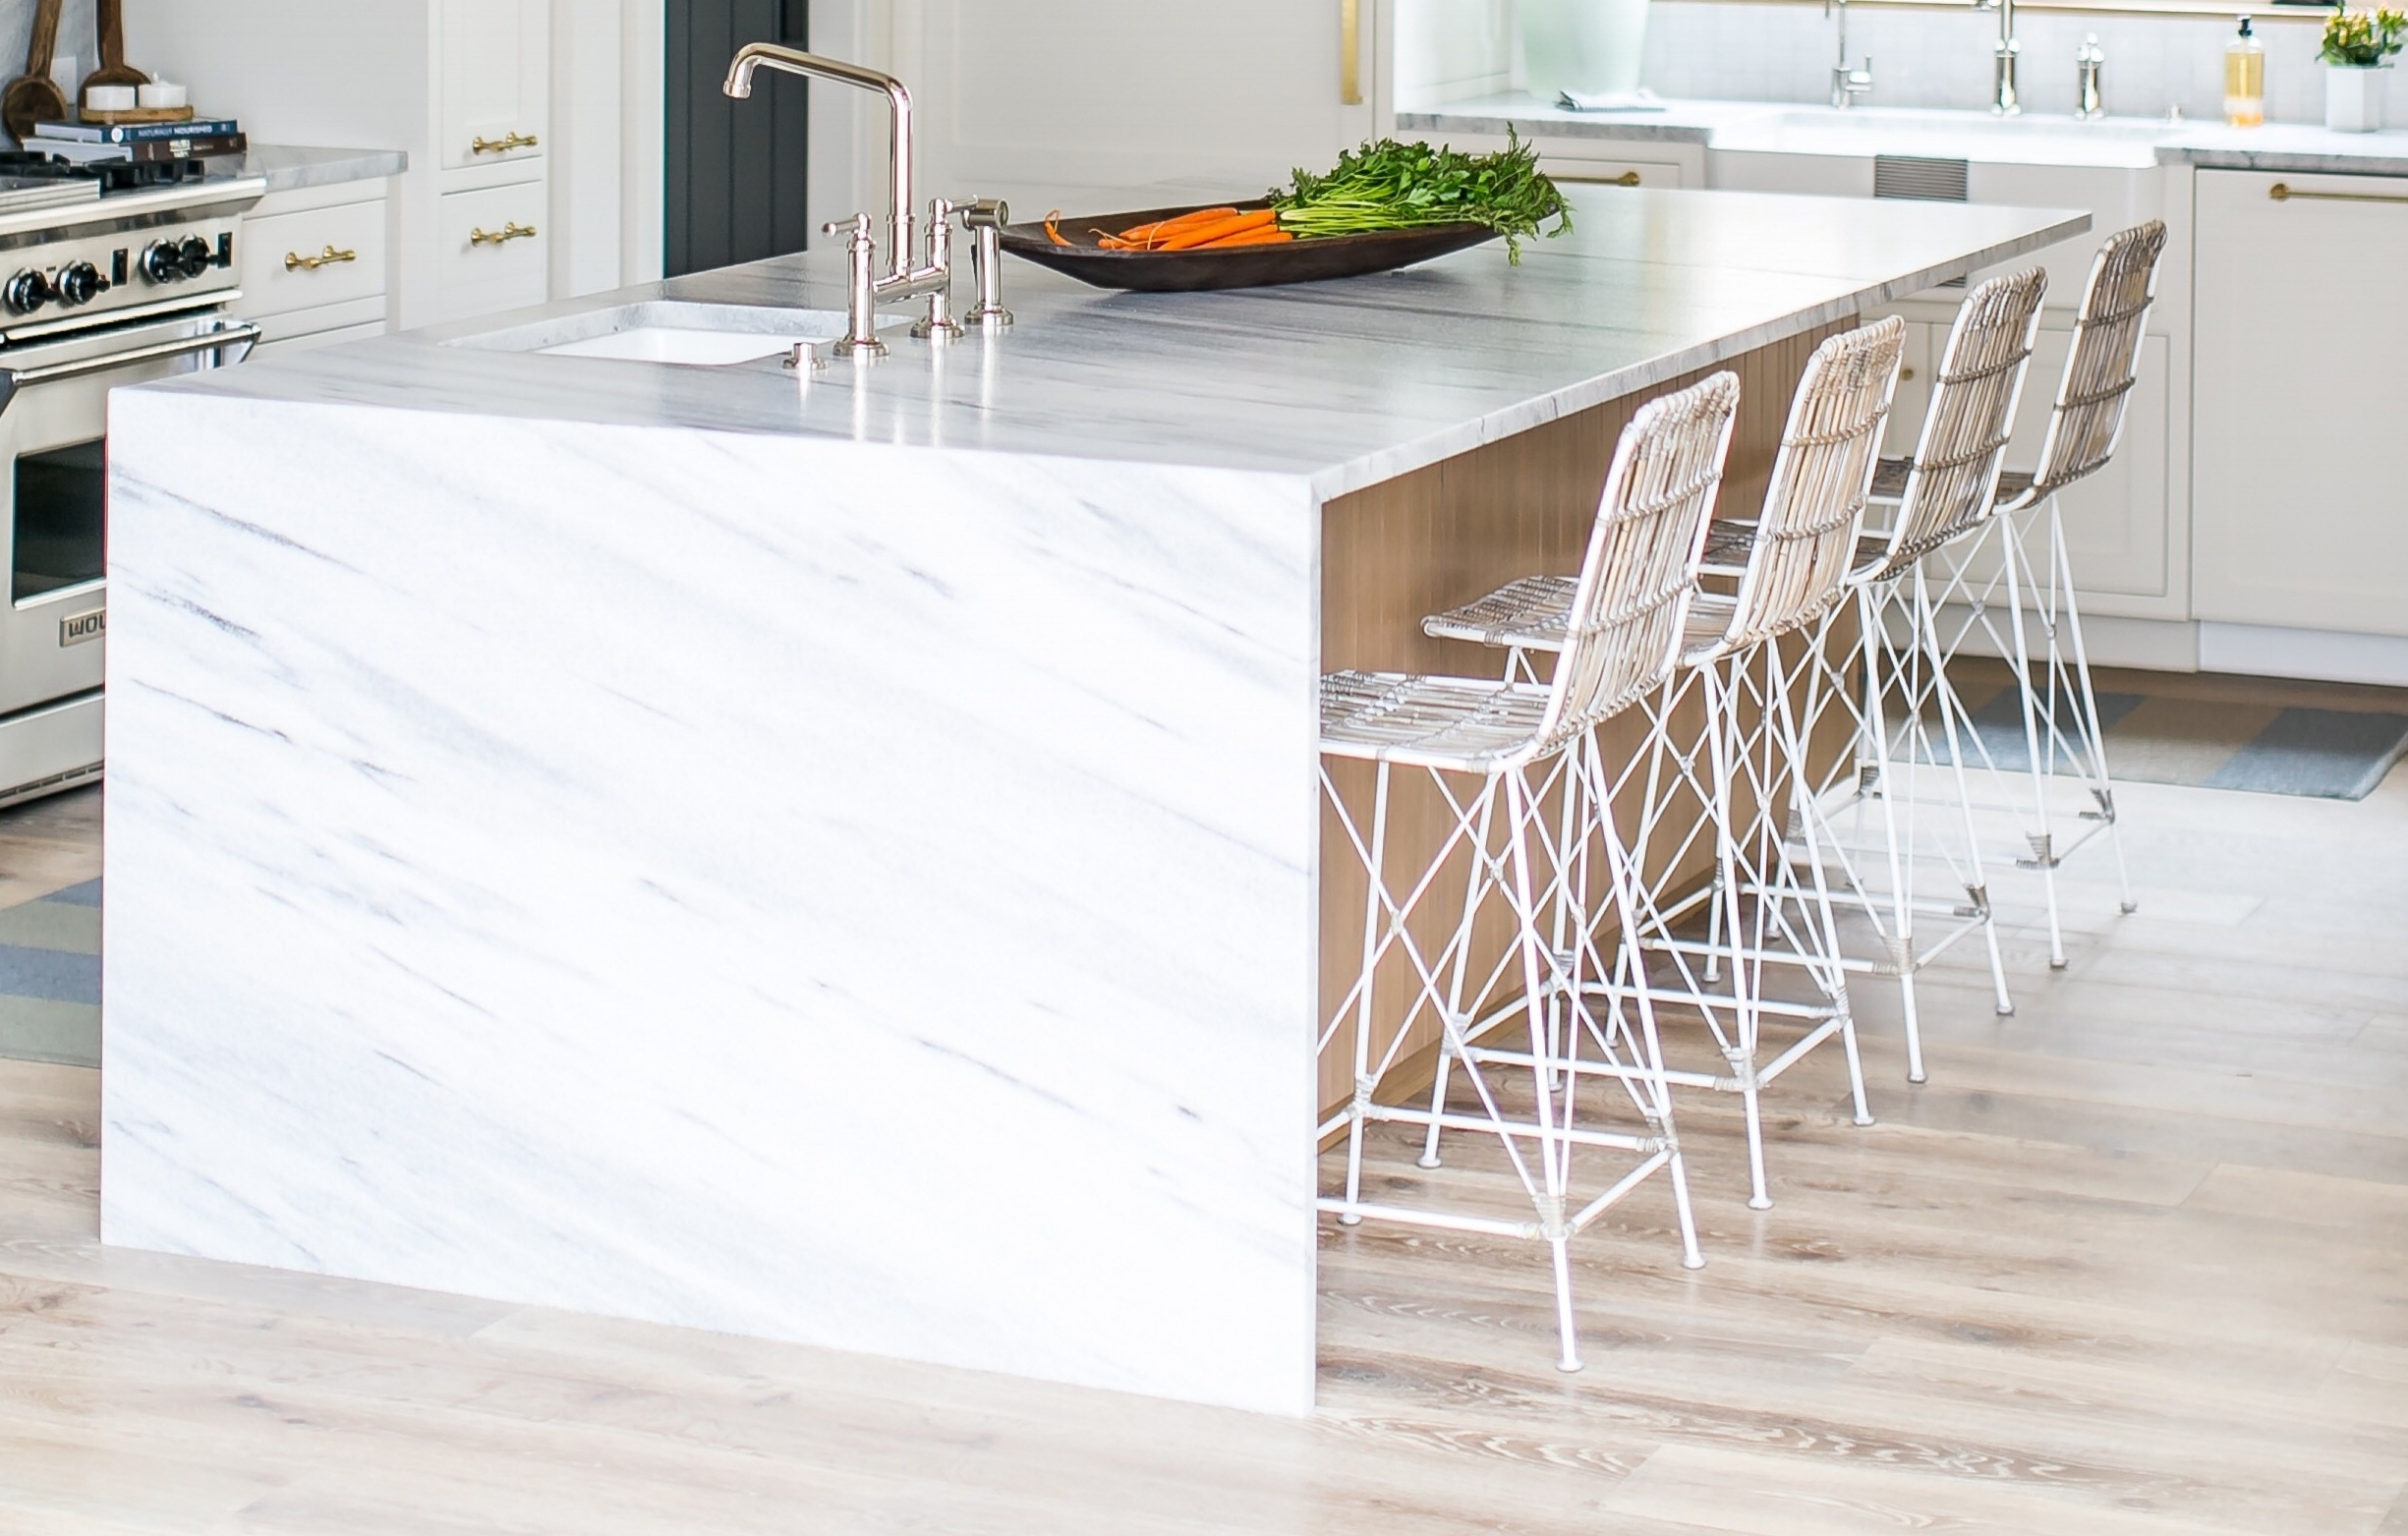 Brooke_Wagner_White_Cherokee_Marble_Kitchen_4-978623-edited.jpg